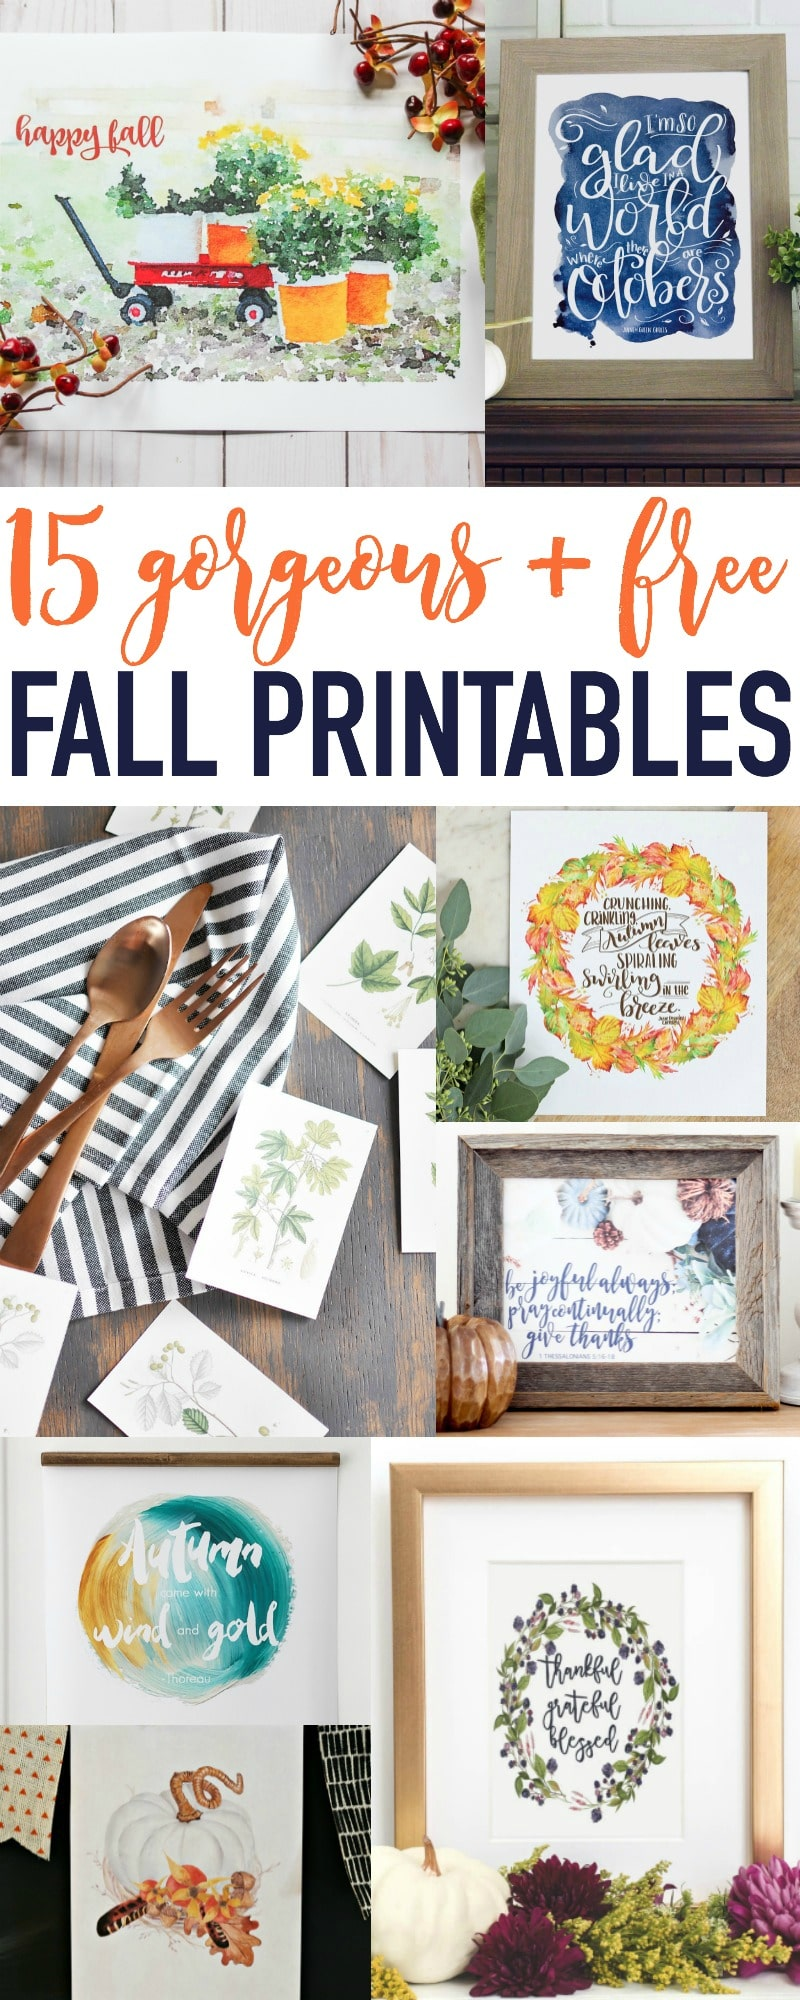 15 Gorgeous + Free Fall Printables - not to miss!!!